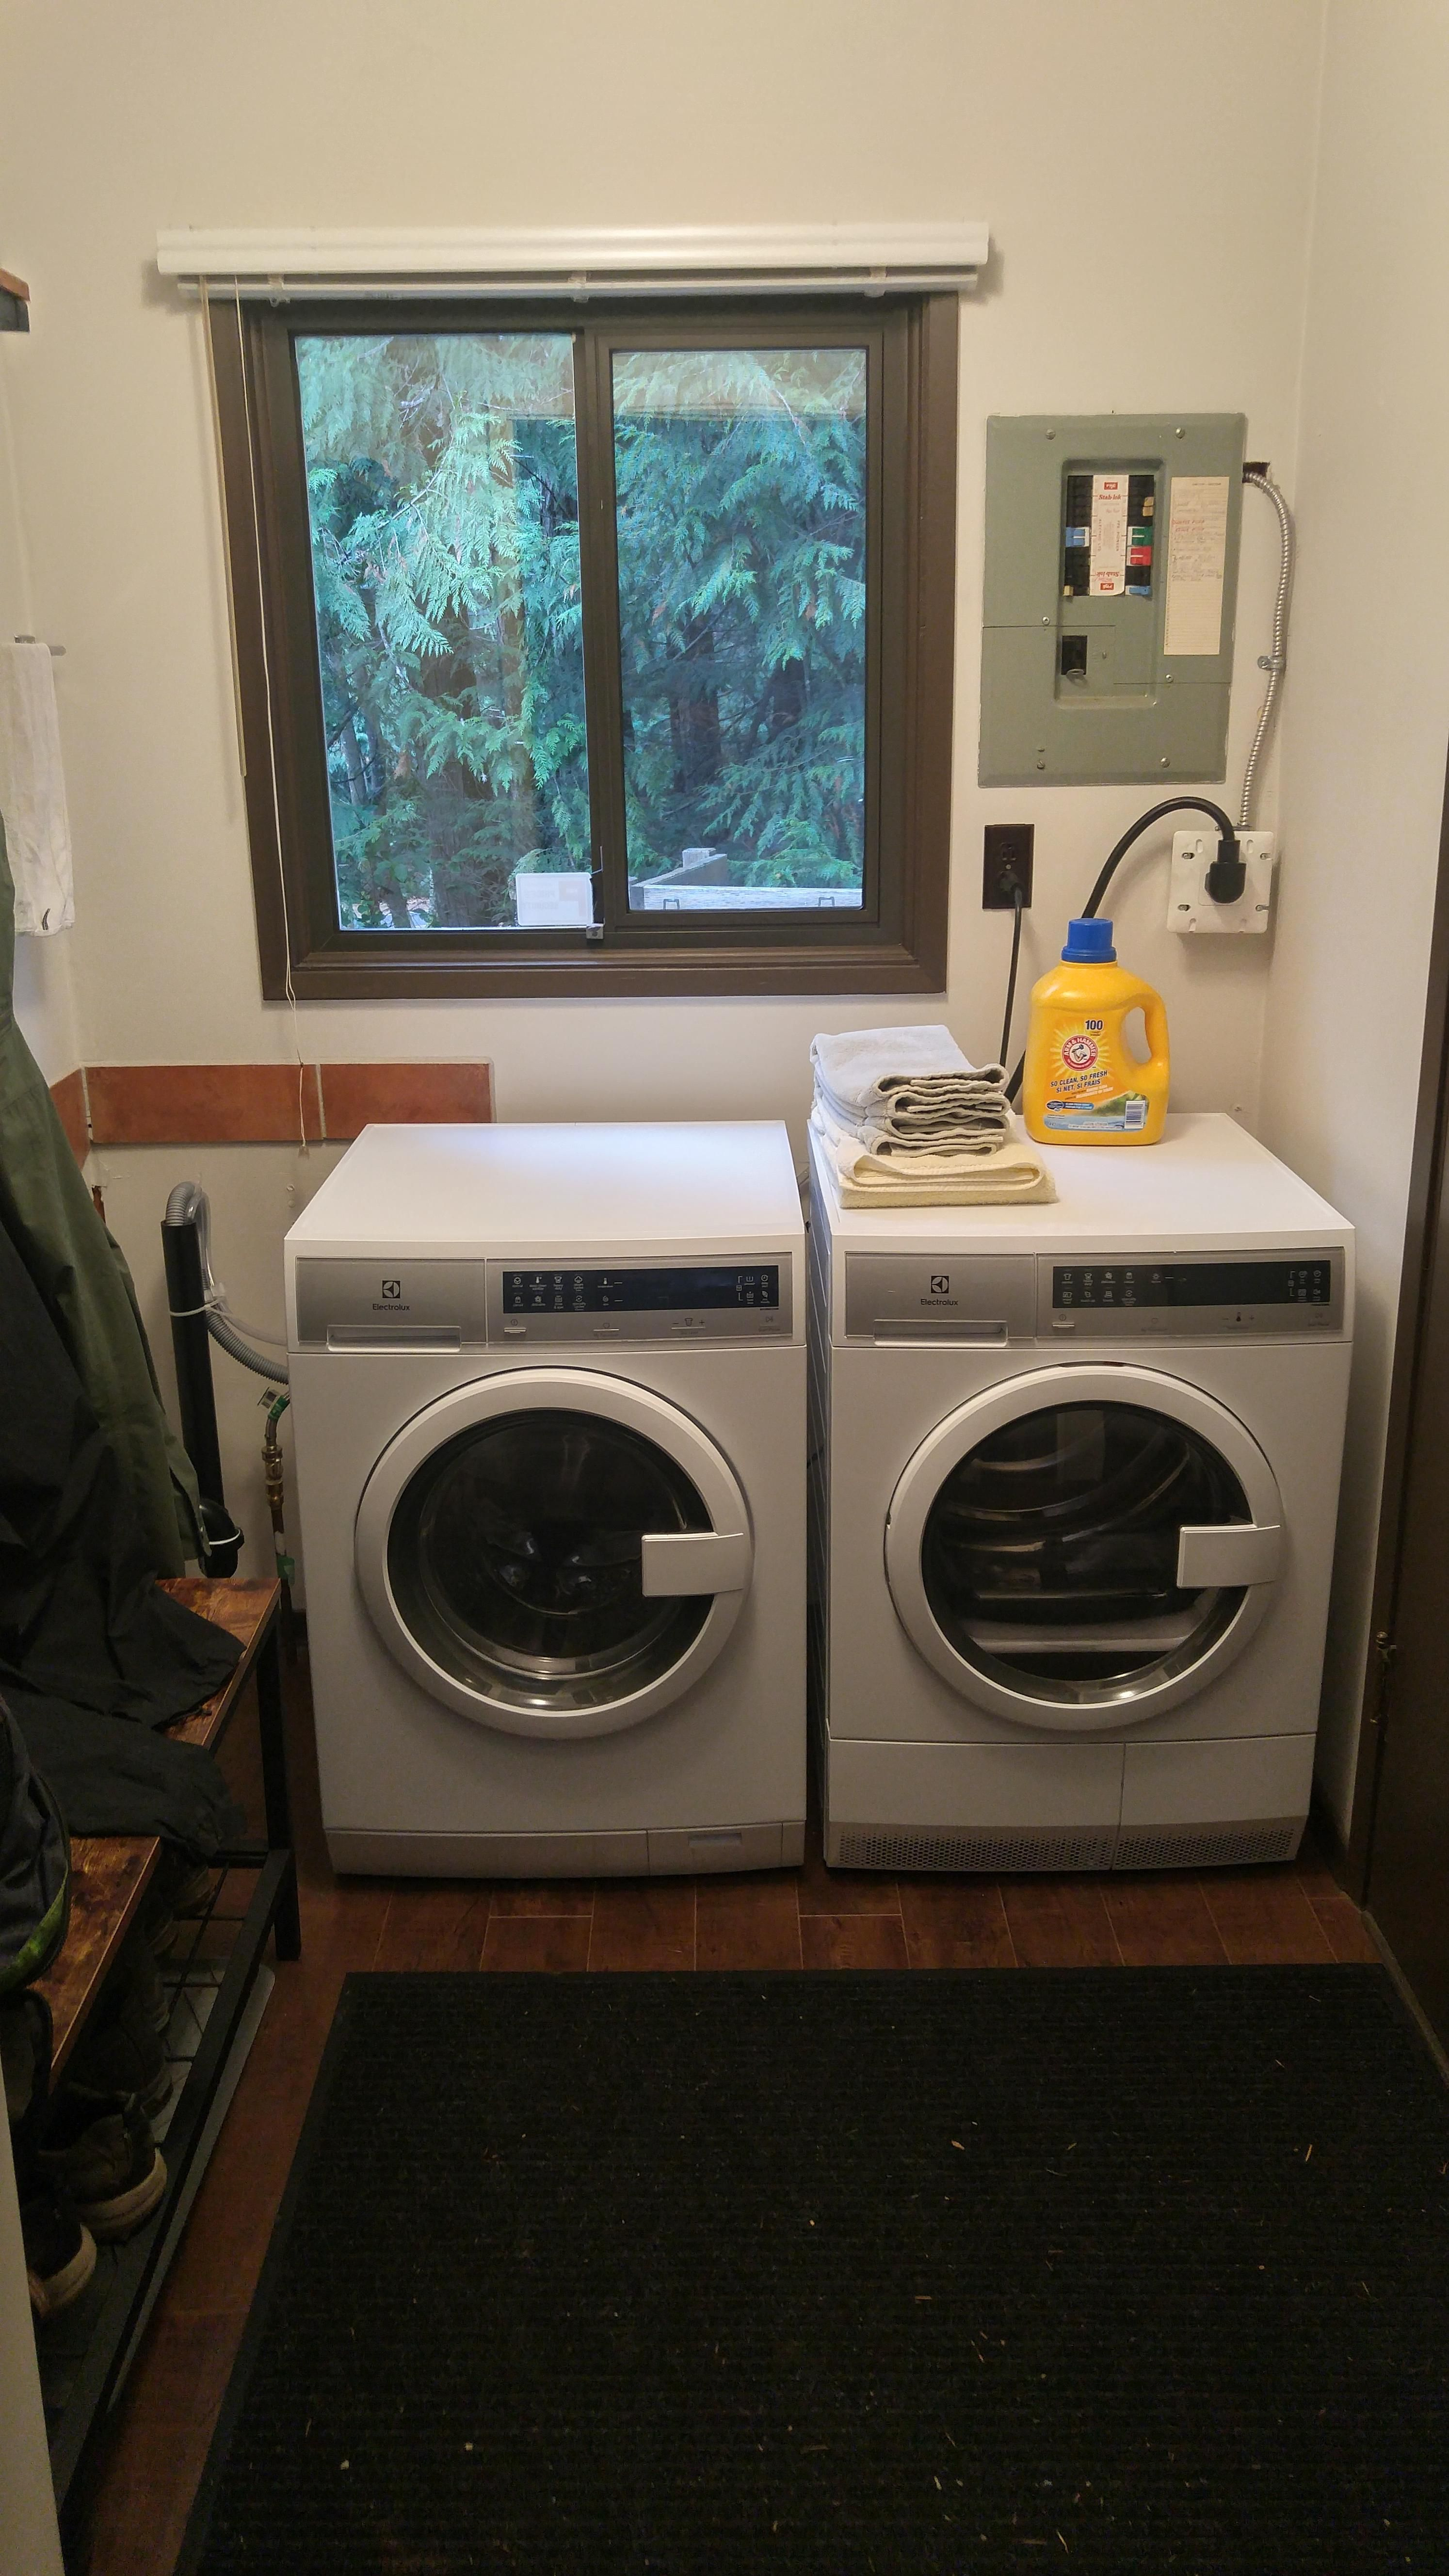 Laundry room/ entry room too cramped? http://imgur.com/gallery